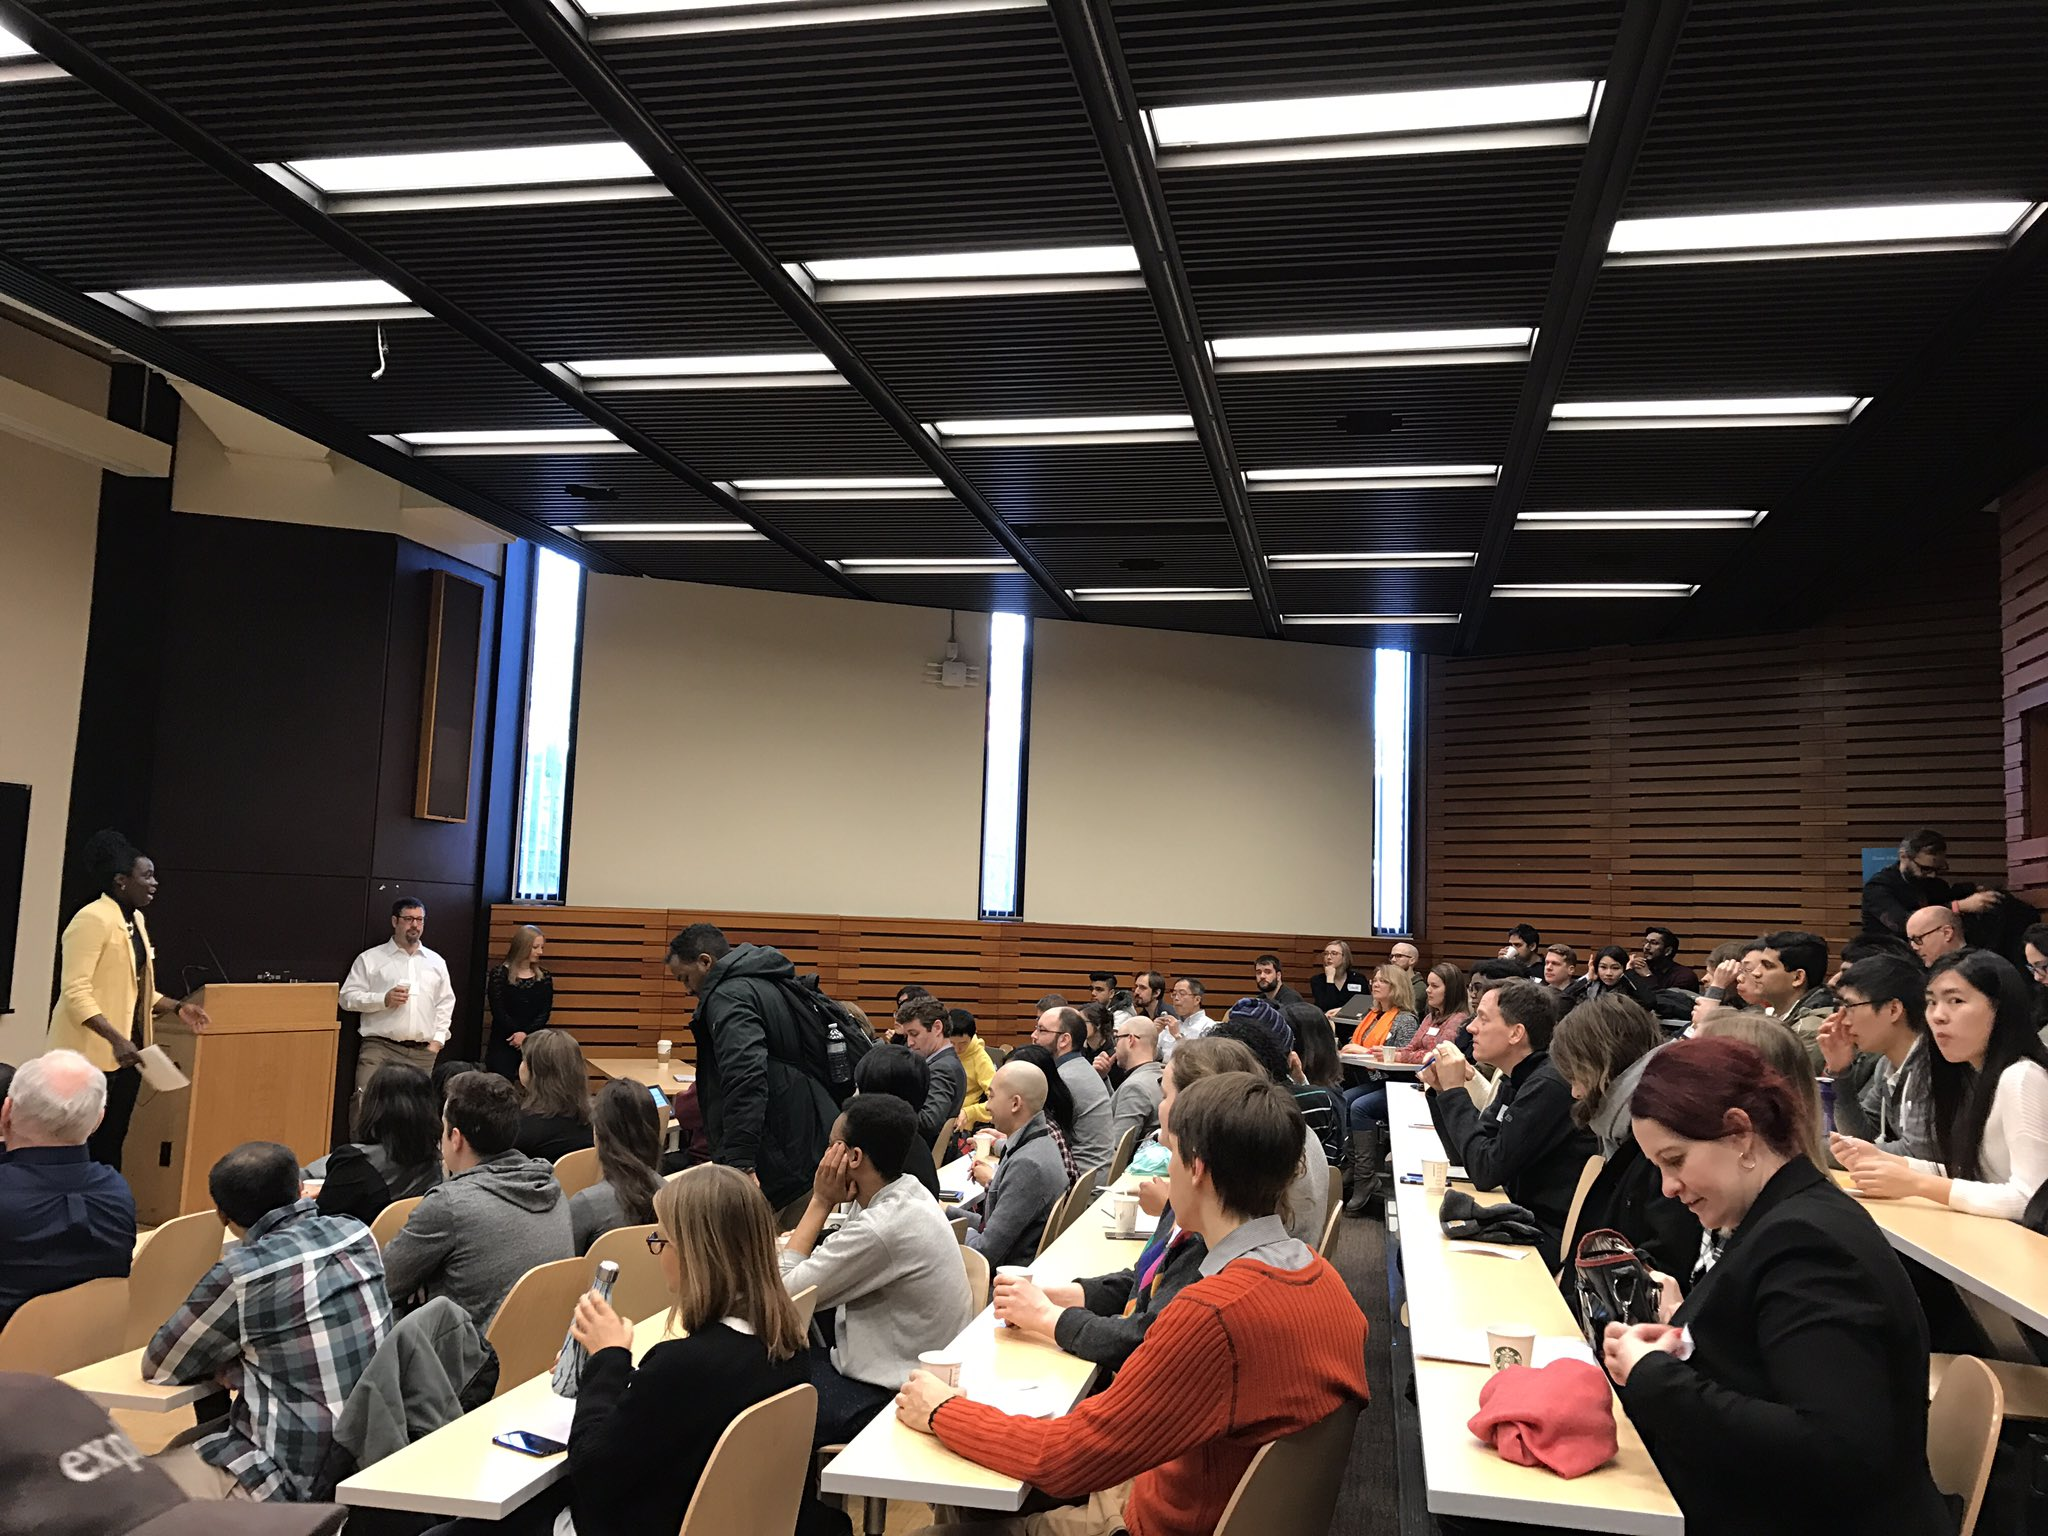 Stoked to take part in #CodeAcrossTO today! Great crowd of participants. https://t.co/IiqLYr17AX